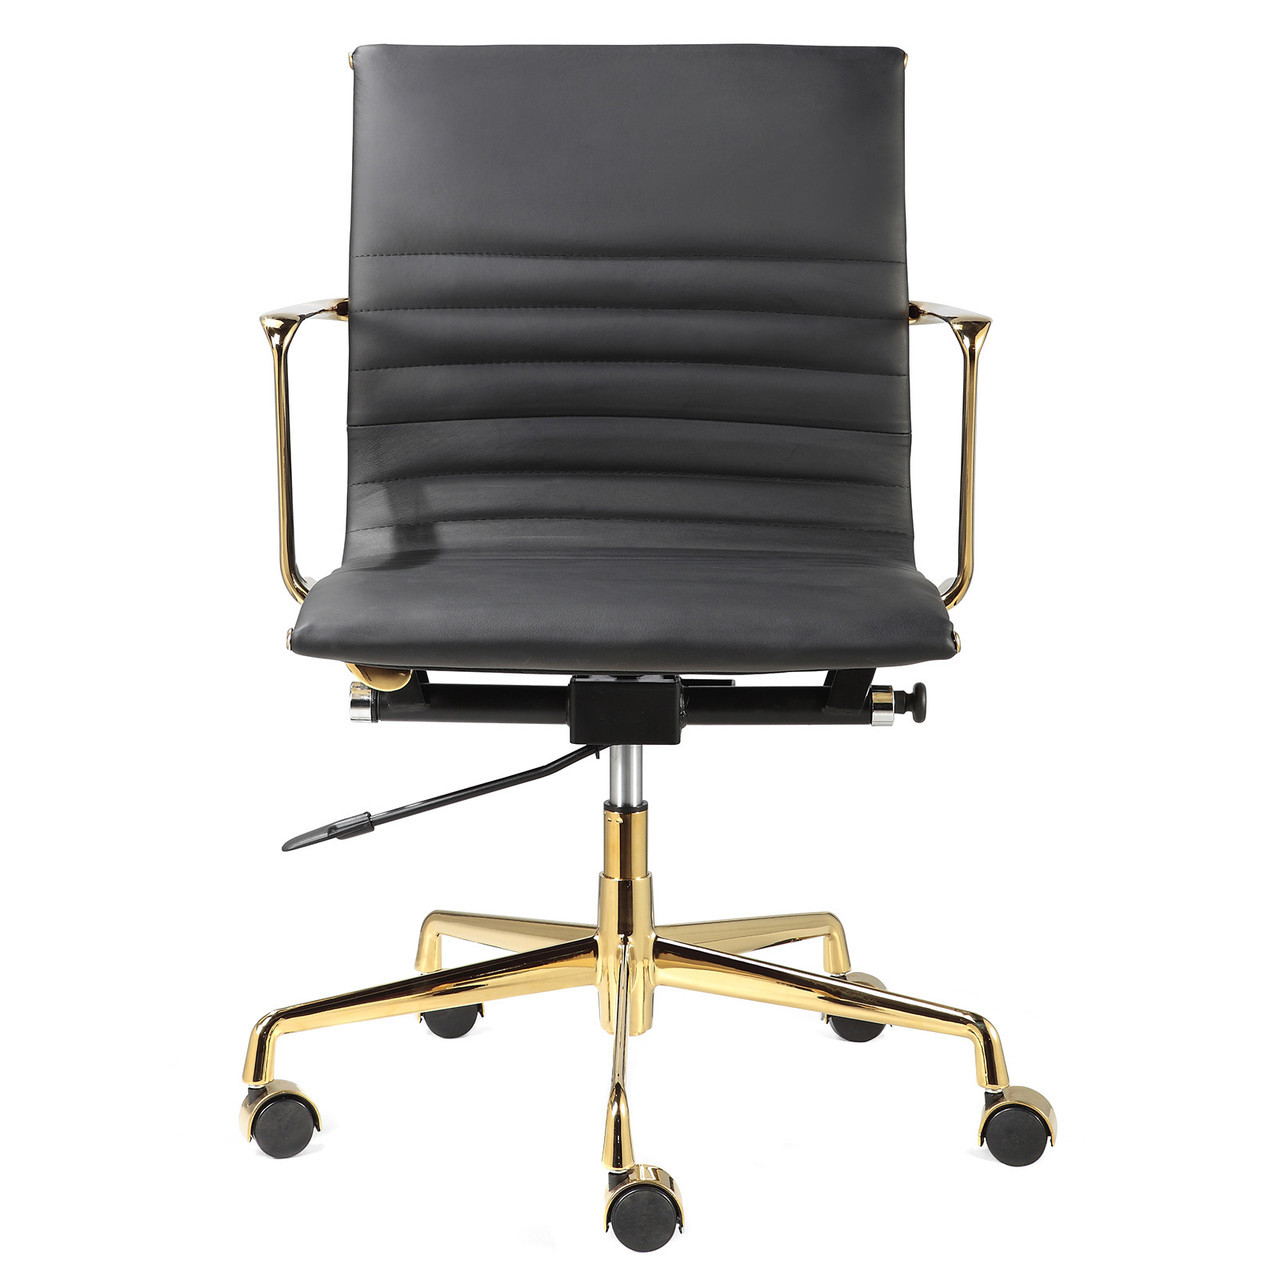 dorado office chair disposable covers canada black italian leather 43 gold m346 modern chairs